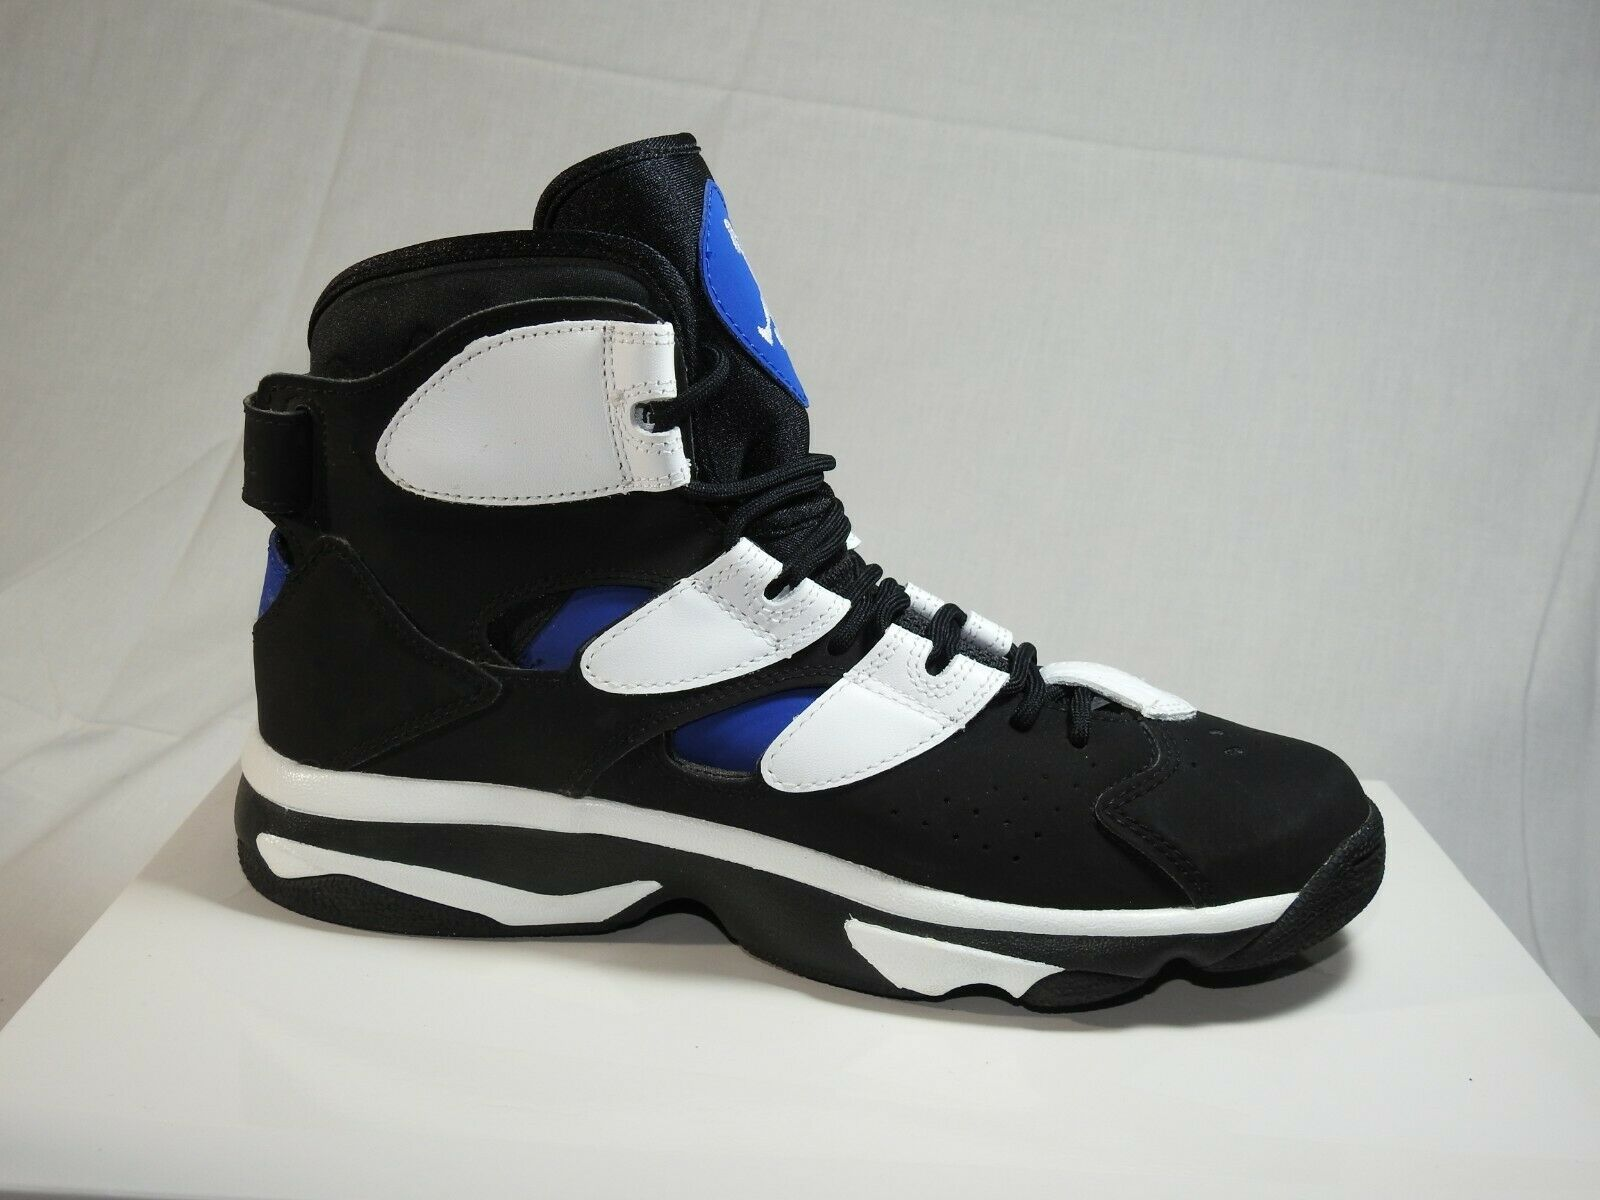 Reebok Pump Shaq Attaq 4 M41972